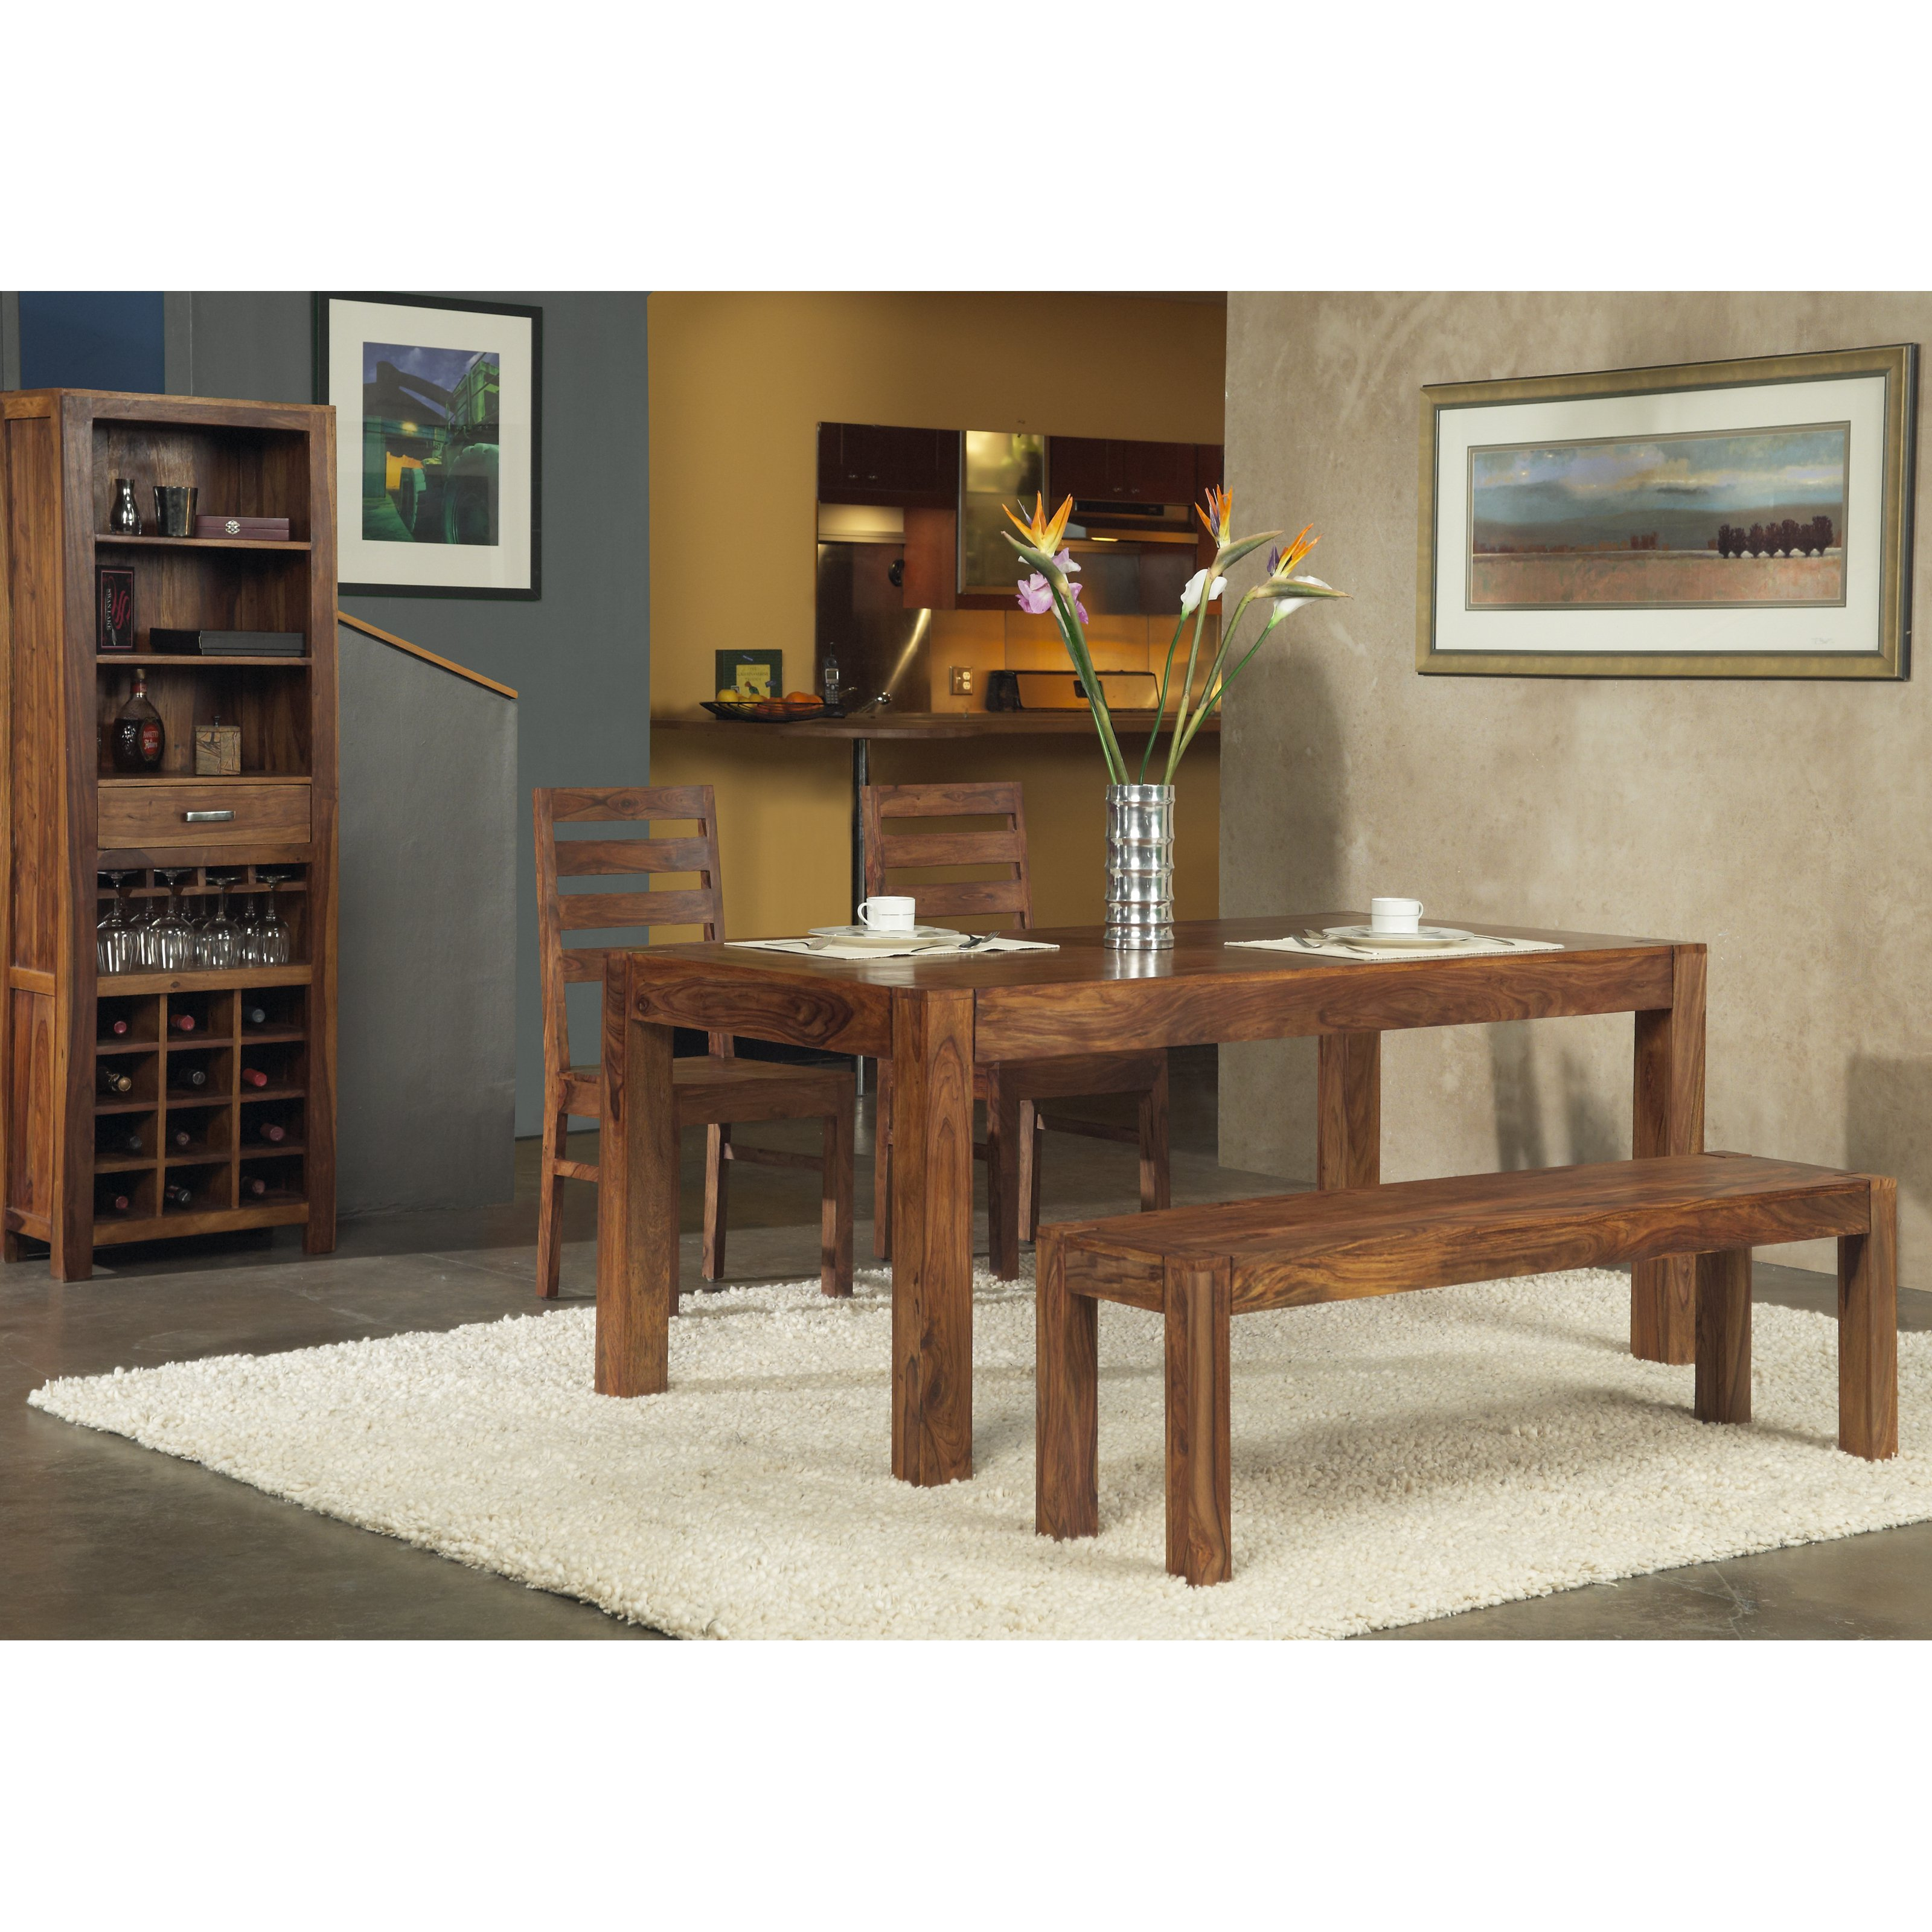 Modus Genus 4 Piece Dining Table Set with Bench by Modus Furniture International